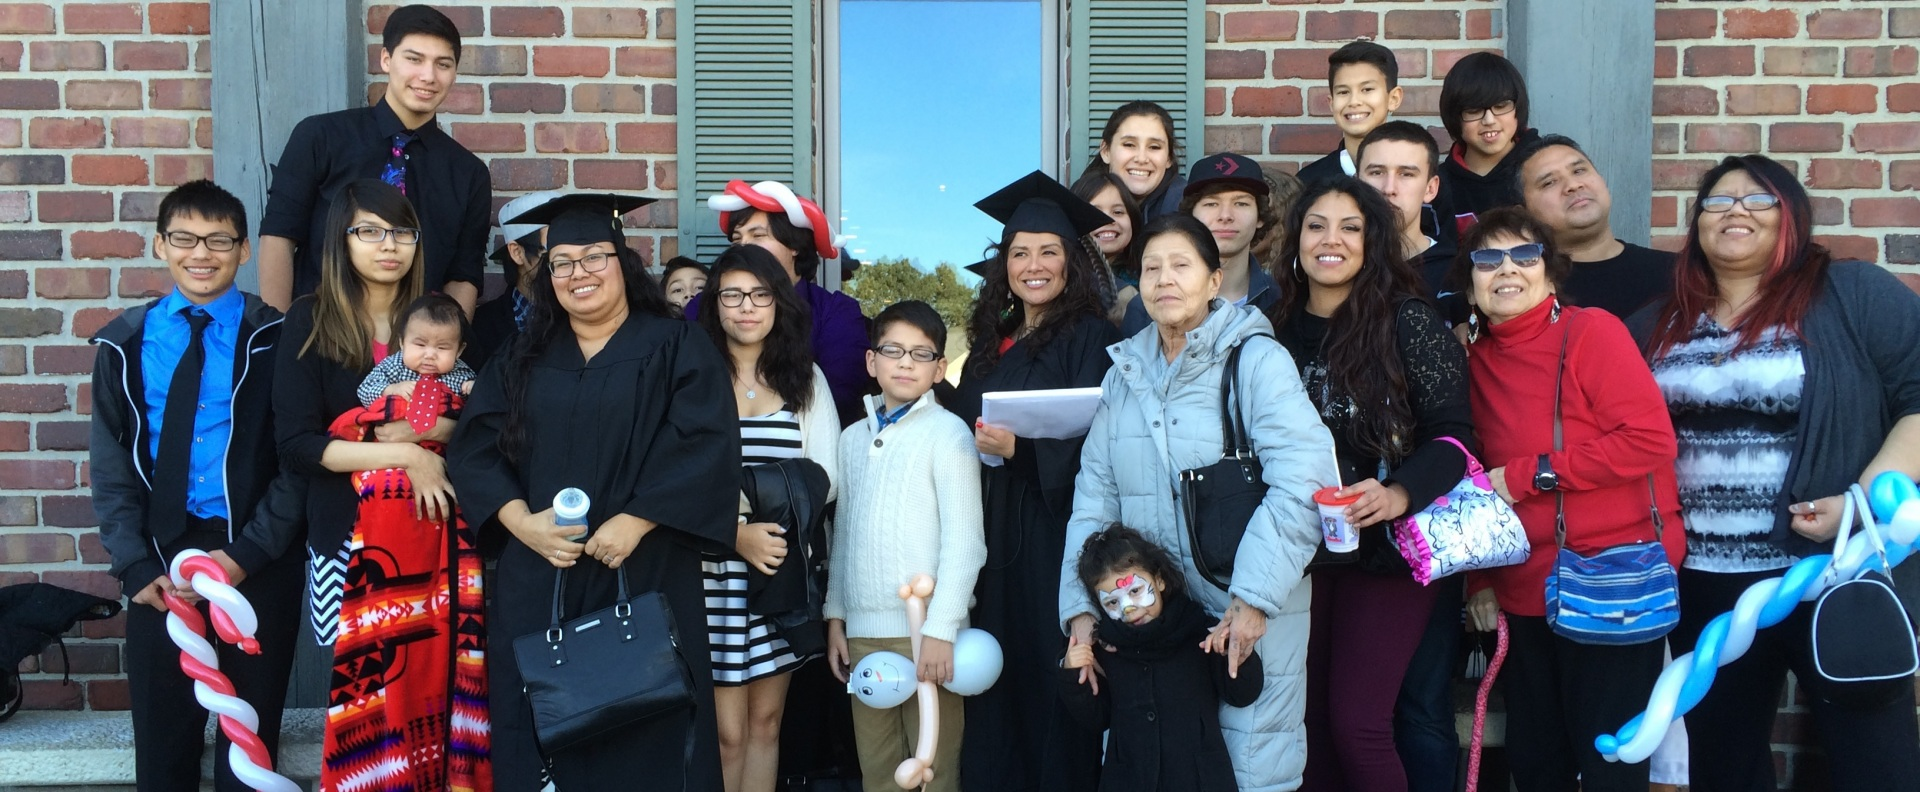 Two gradates in a cap and gown pose for a photograph with their families.